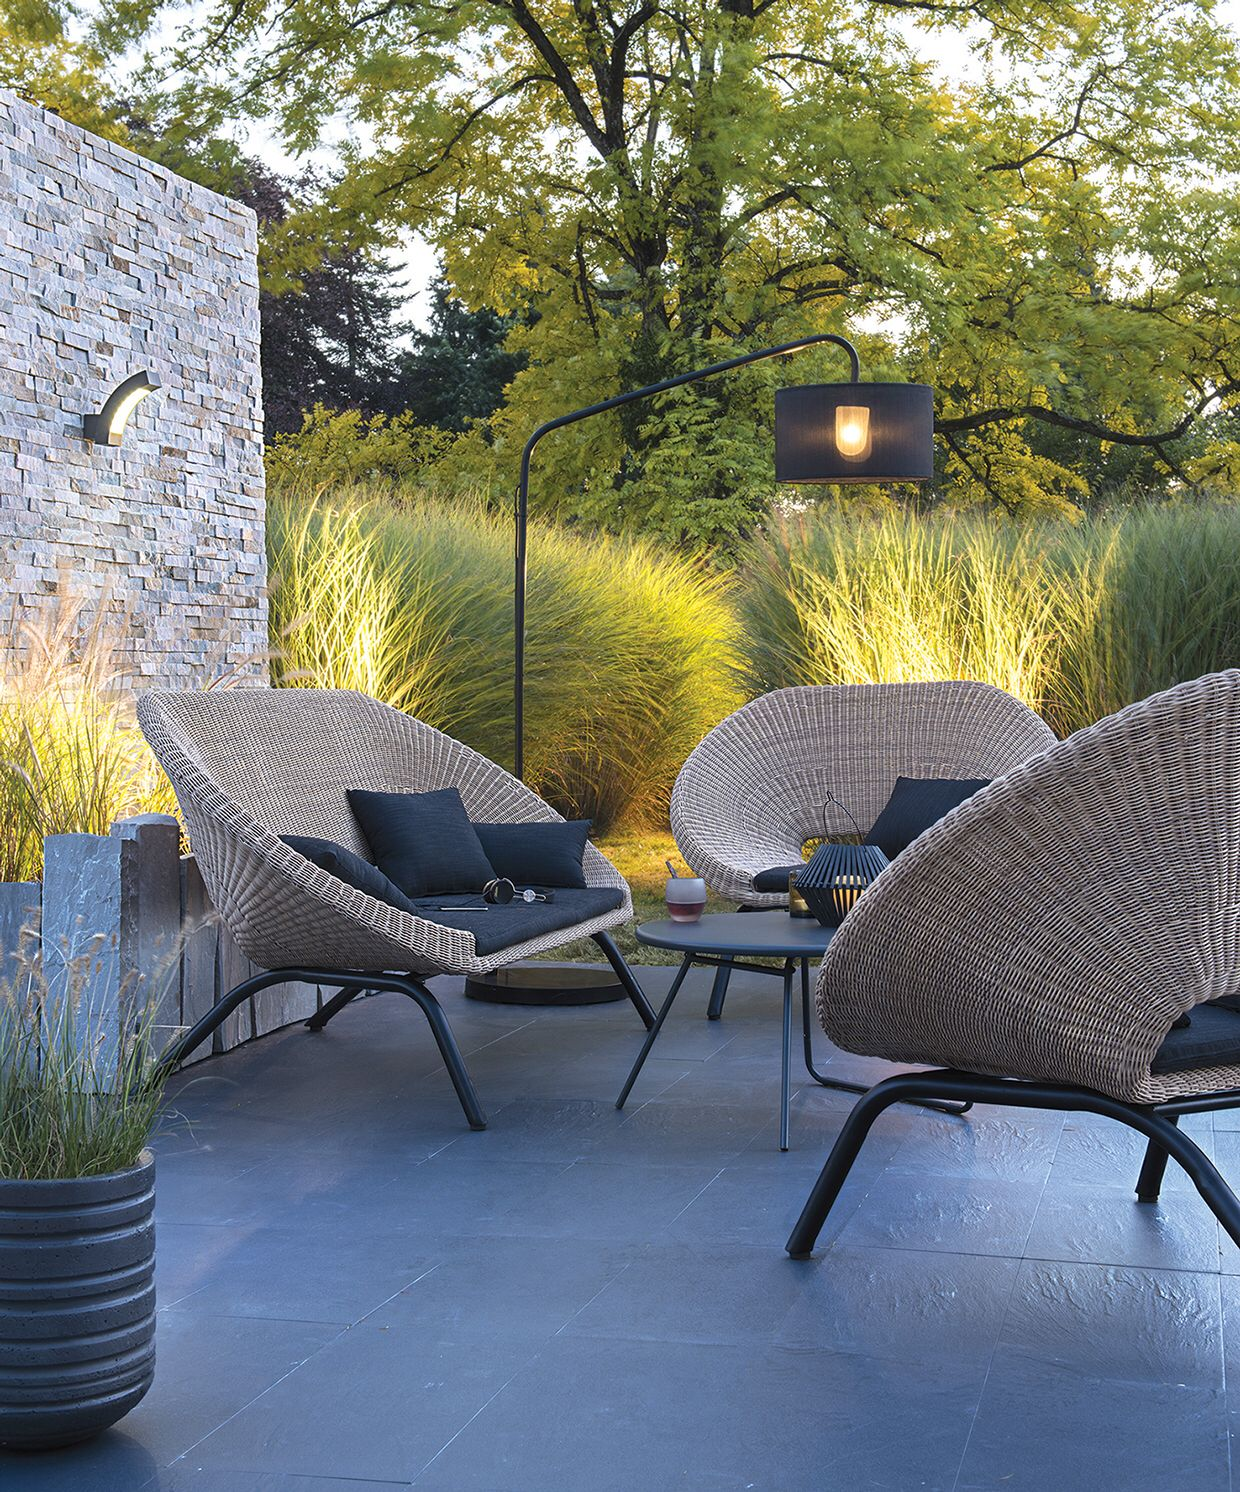 Lounge Sessel Extreme Lounging Stylish Modern Seating For The Garden Adamchristopherdesign Co